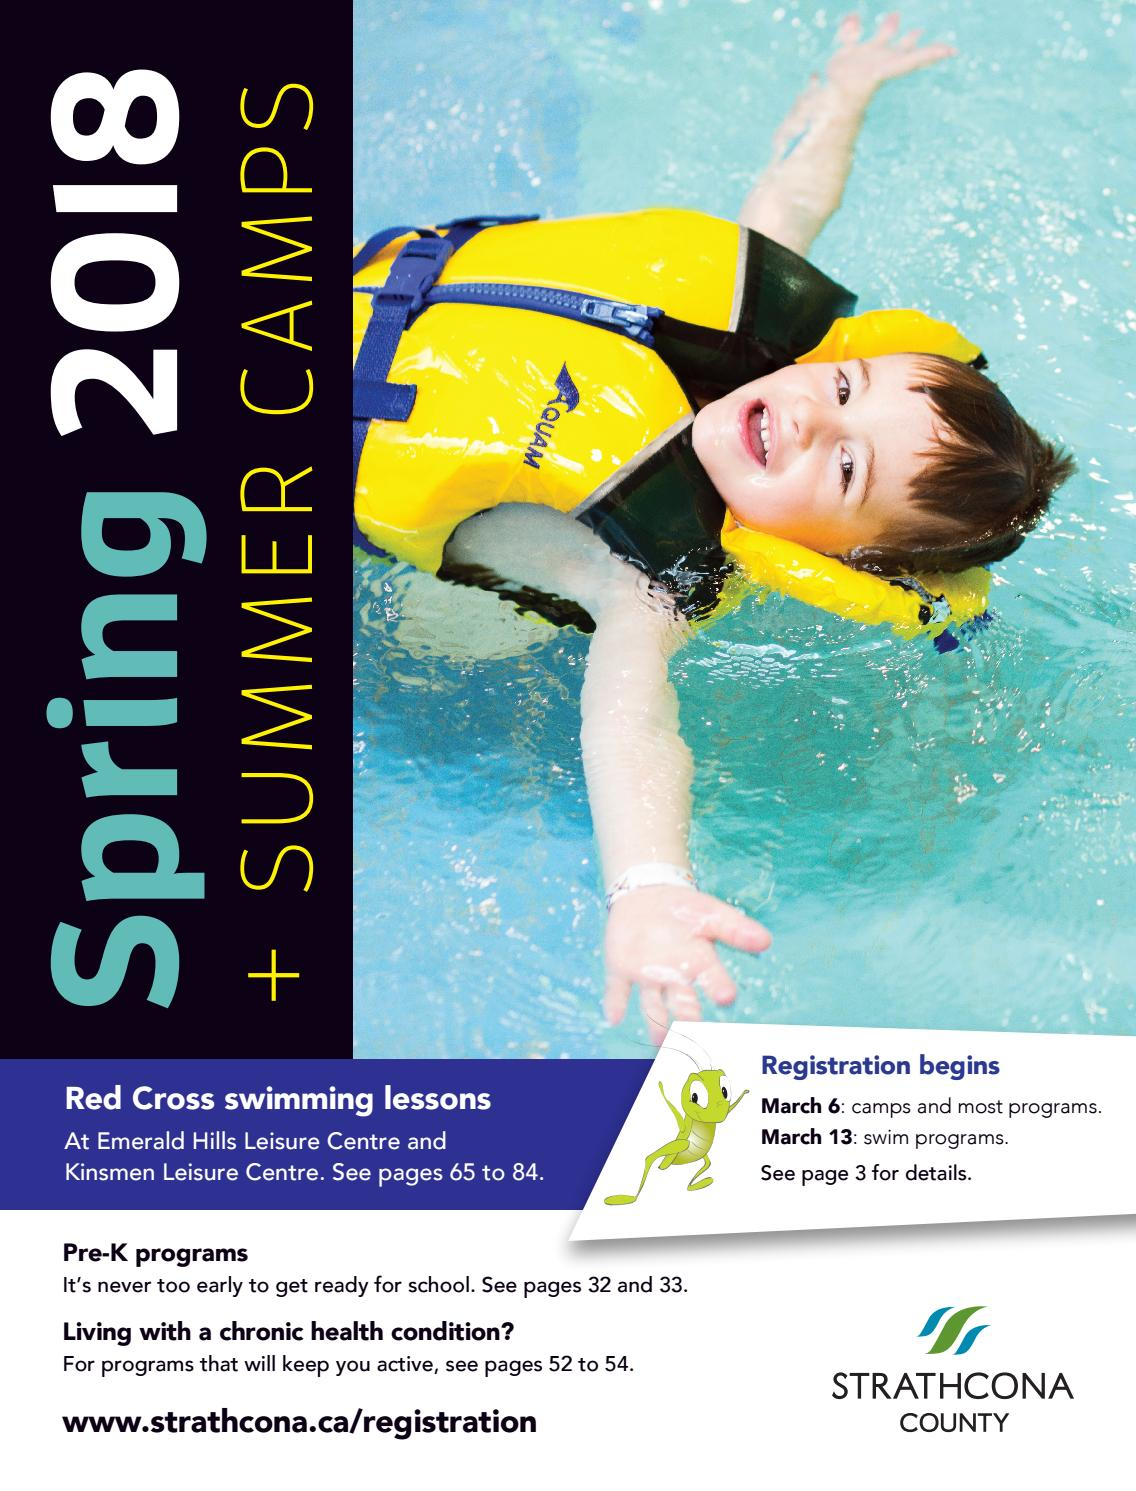 Strathcona County Spring Summer Camps Recreation Guide 2018 By Circuit Bending Fool Pitch Mod Tutorial Issuu